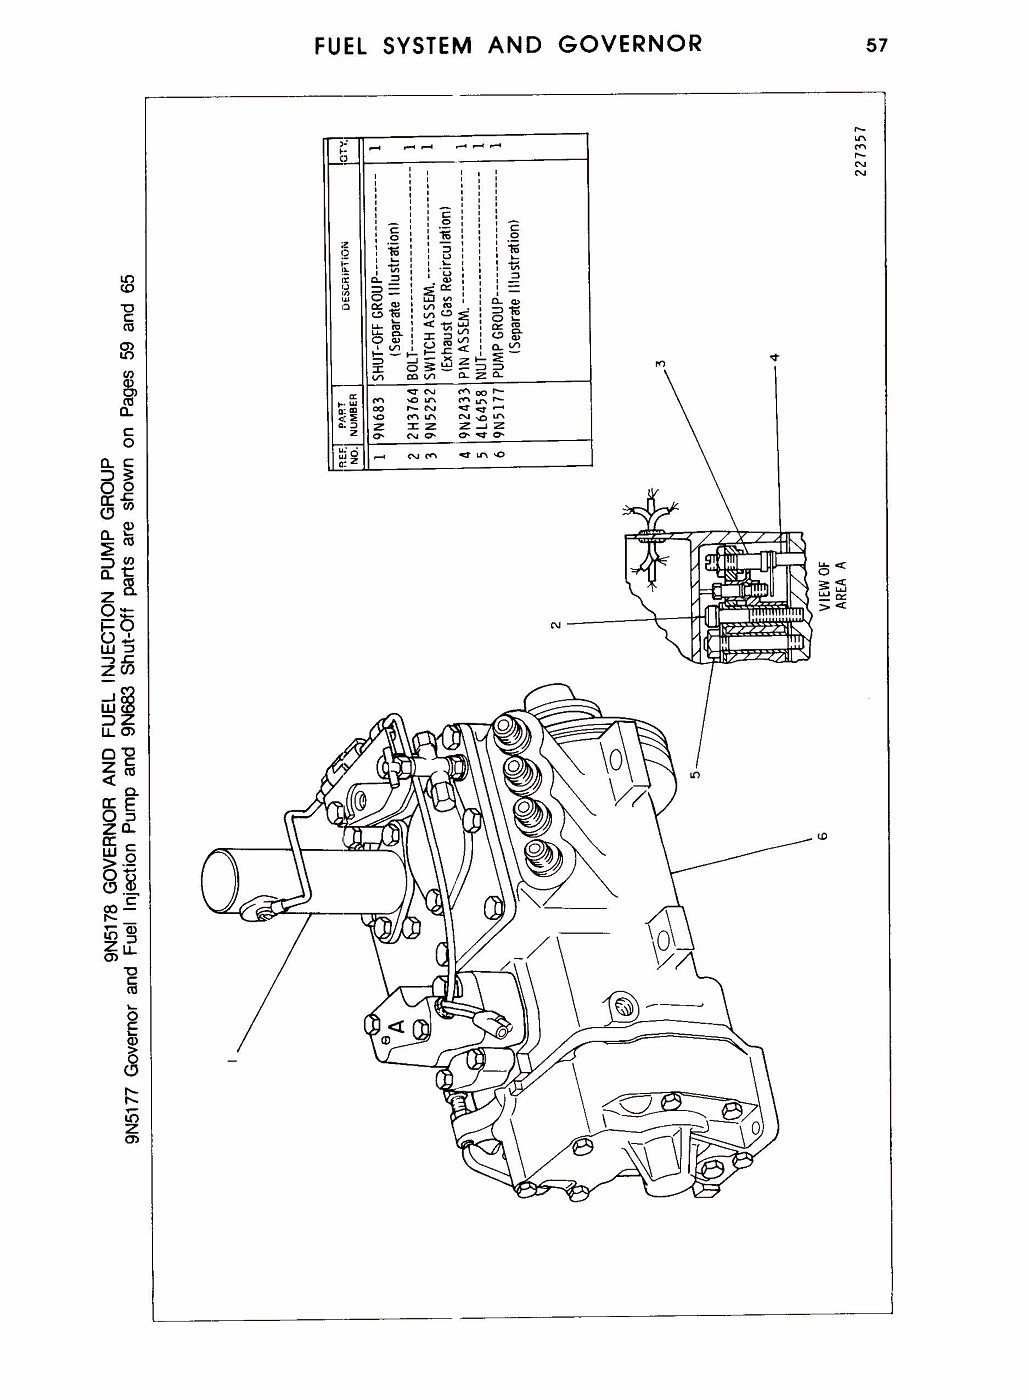 2002 3126 caterpillar engine diagram